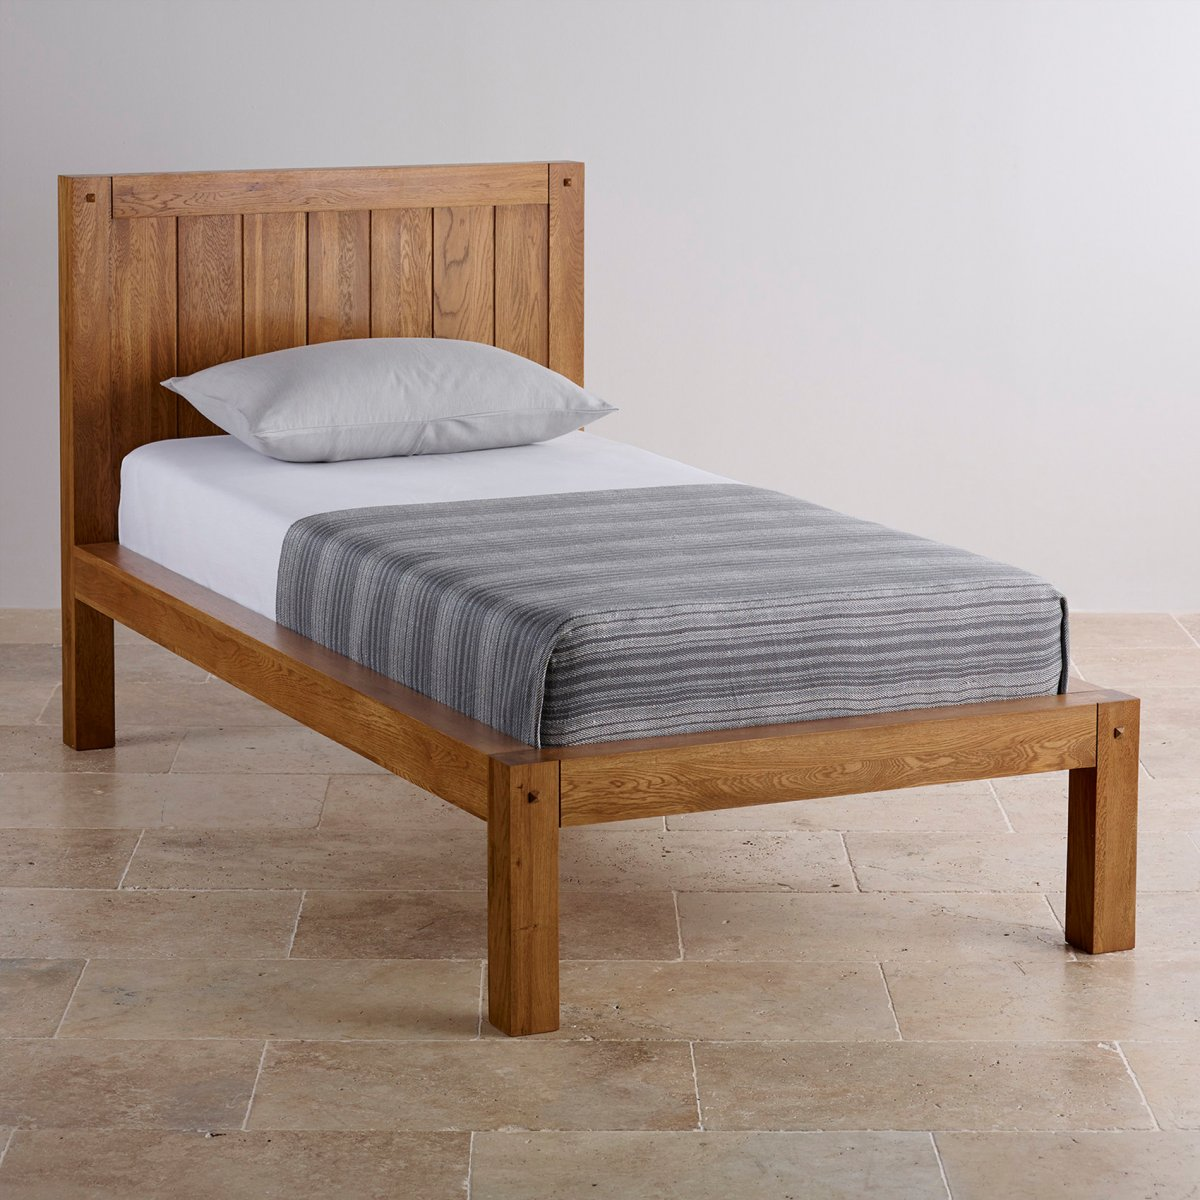 Quercus single bed rustic solid oak oak furniture land Wooden bed furniture